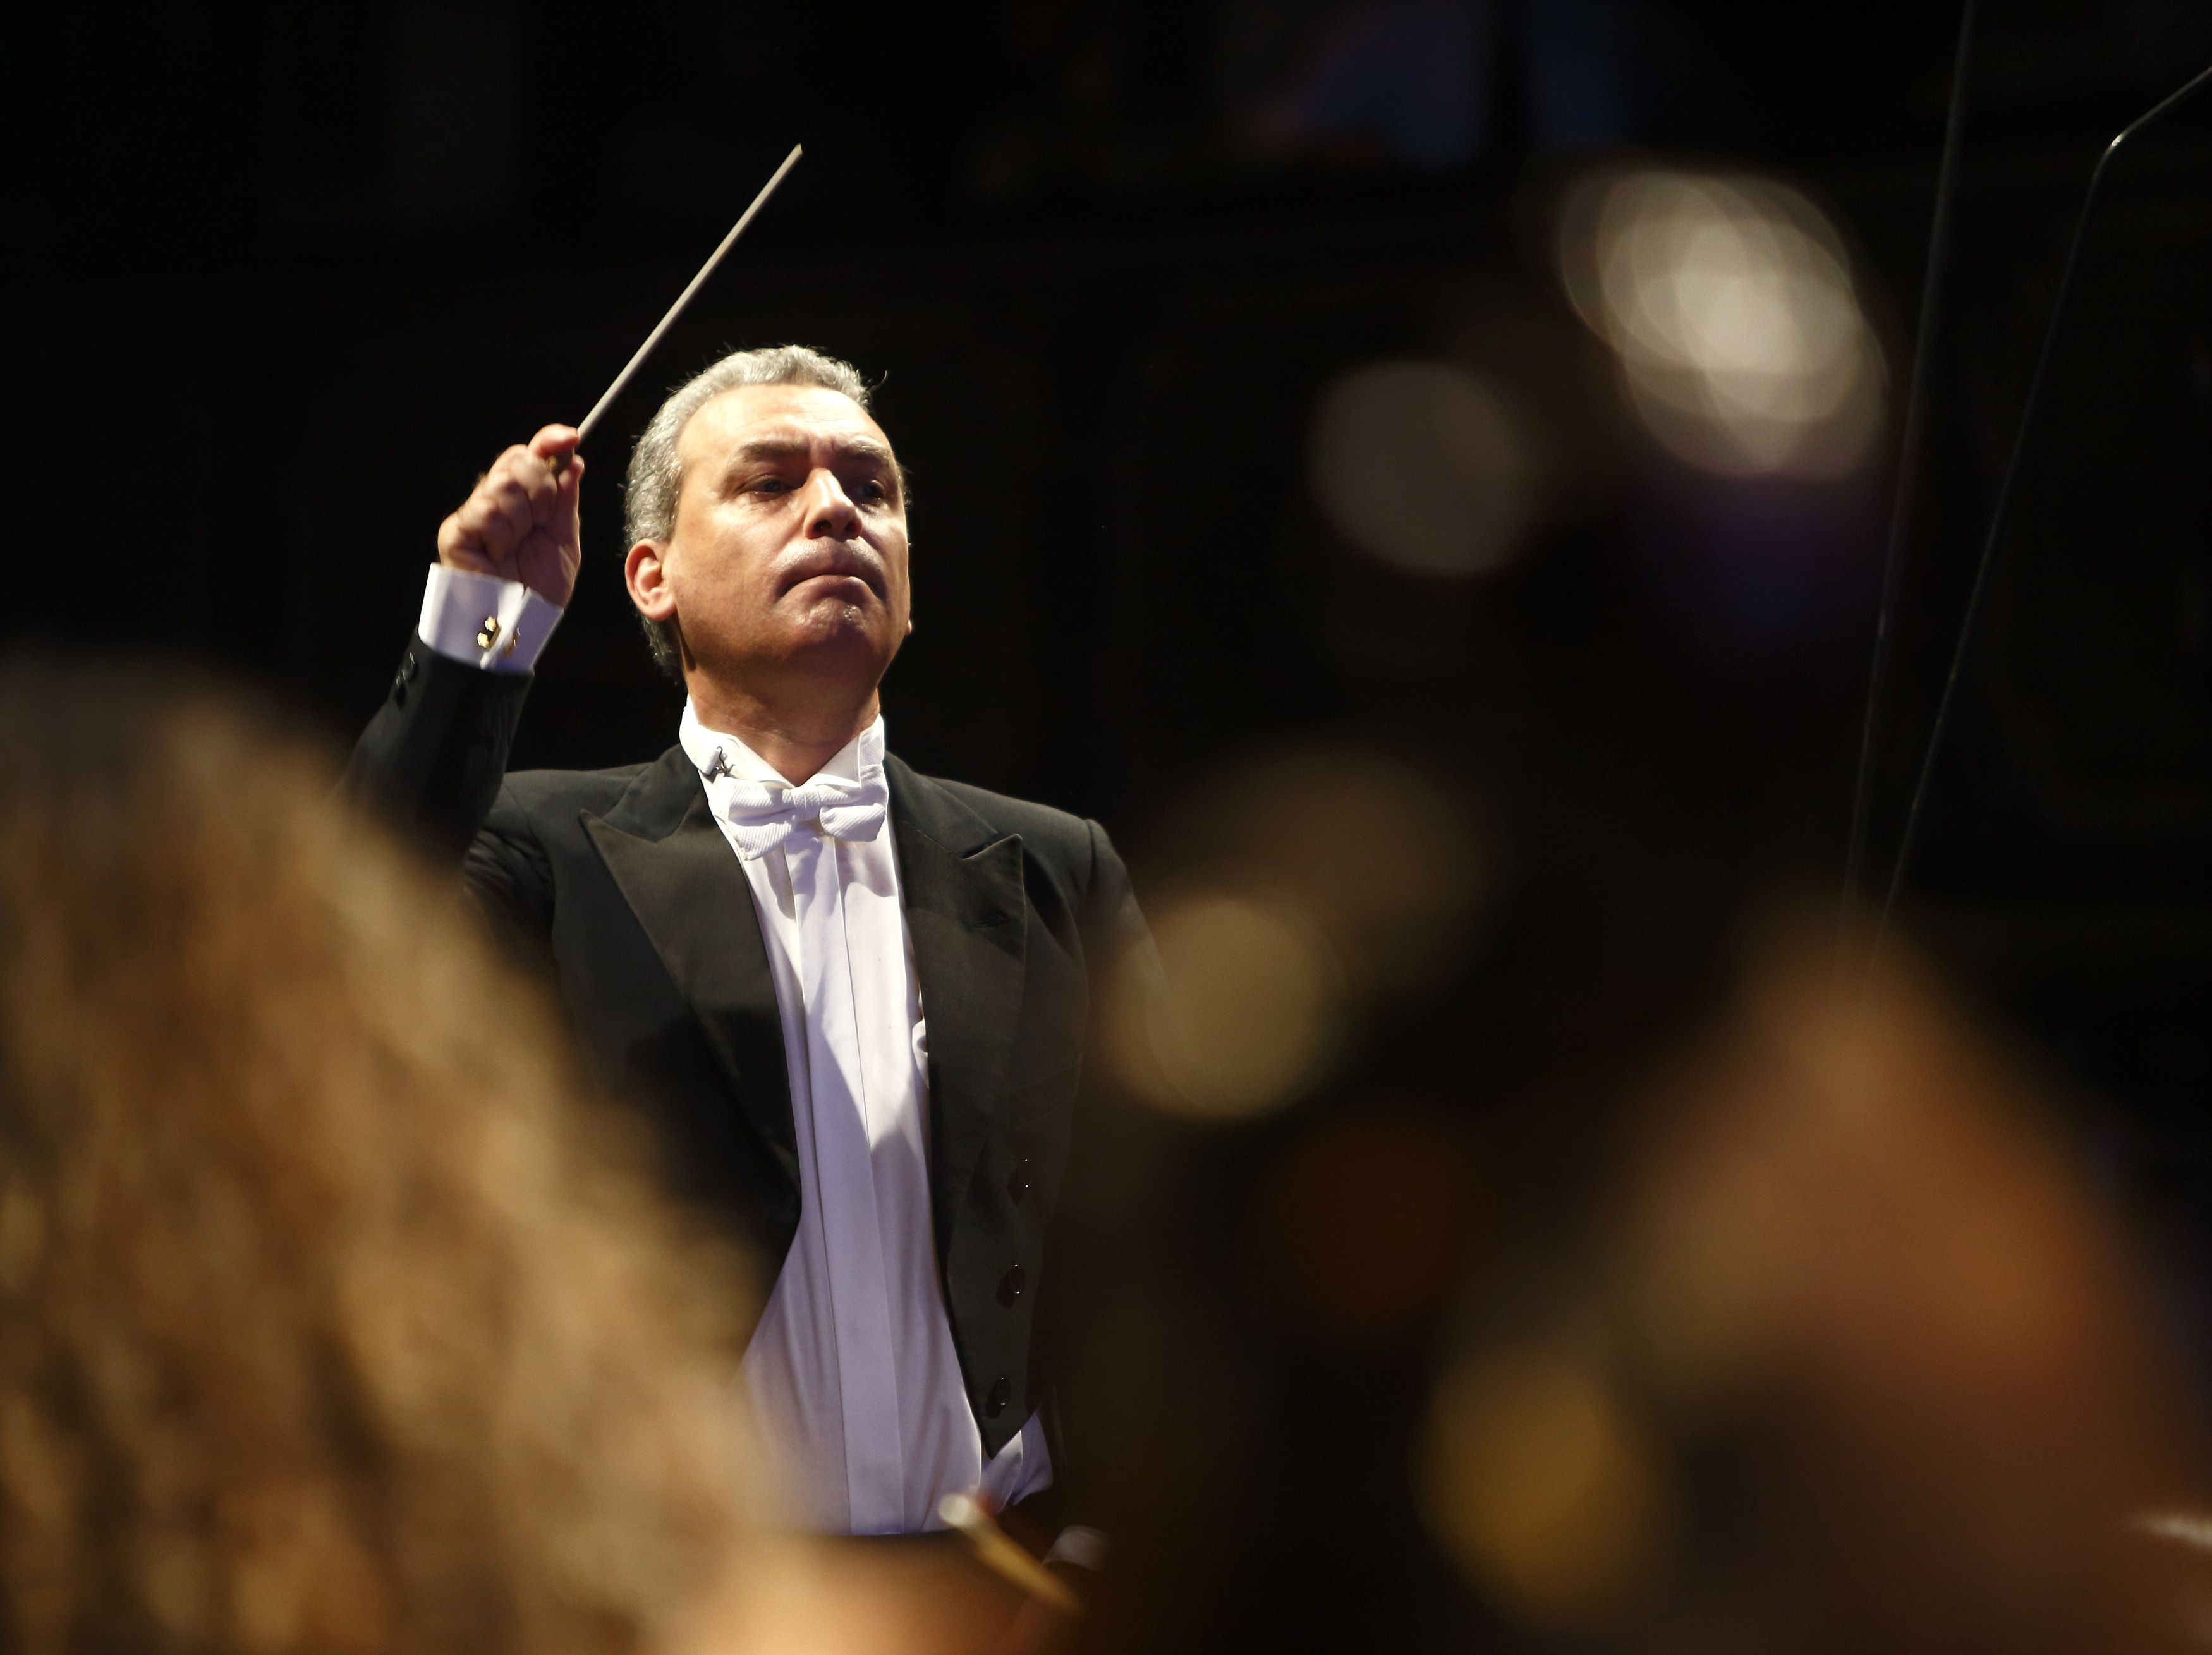 Michael Laus Directing the Malta Philharmonic Orchestra